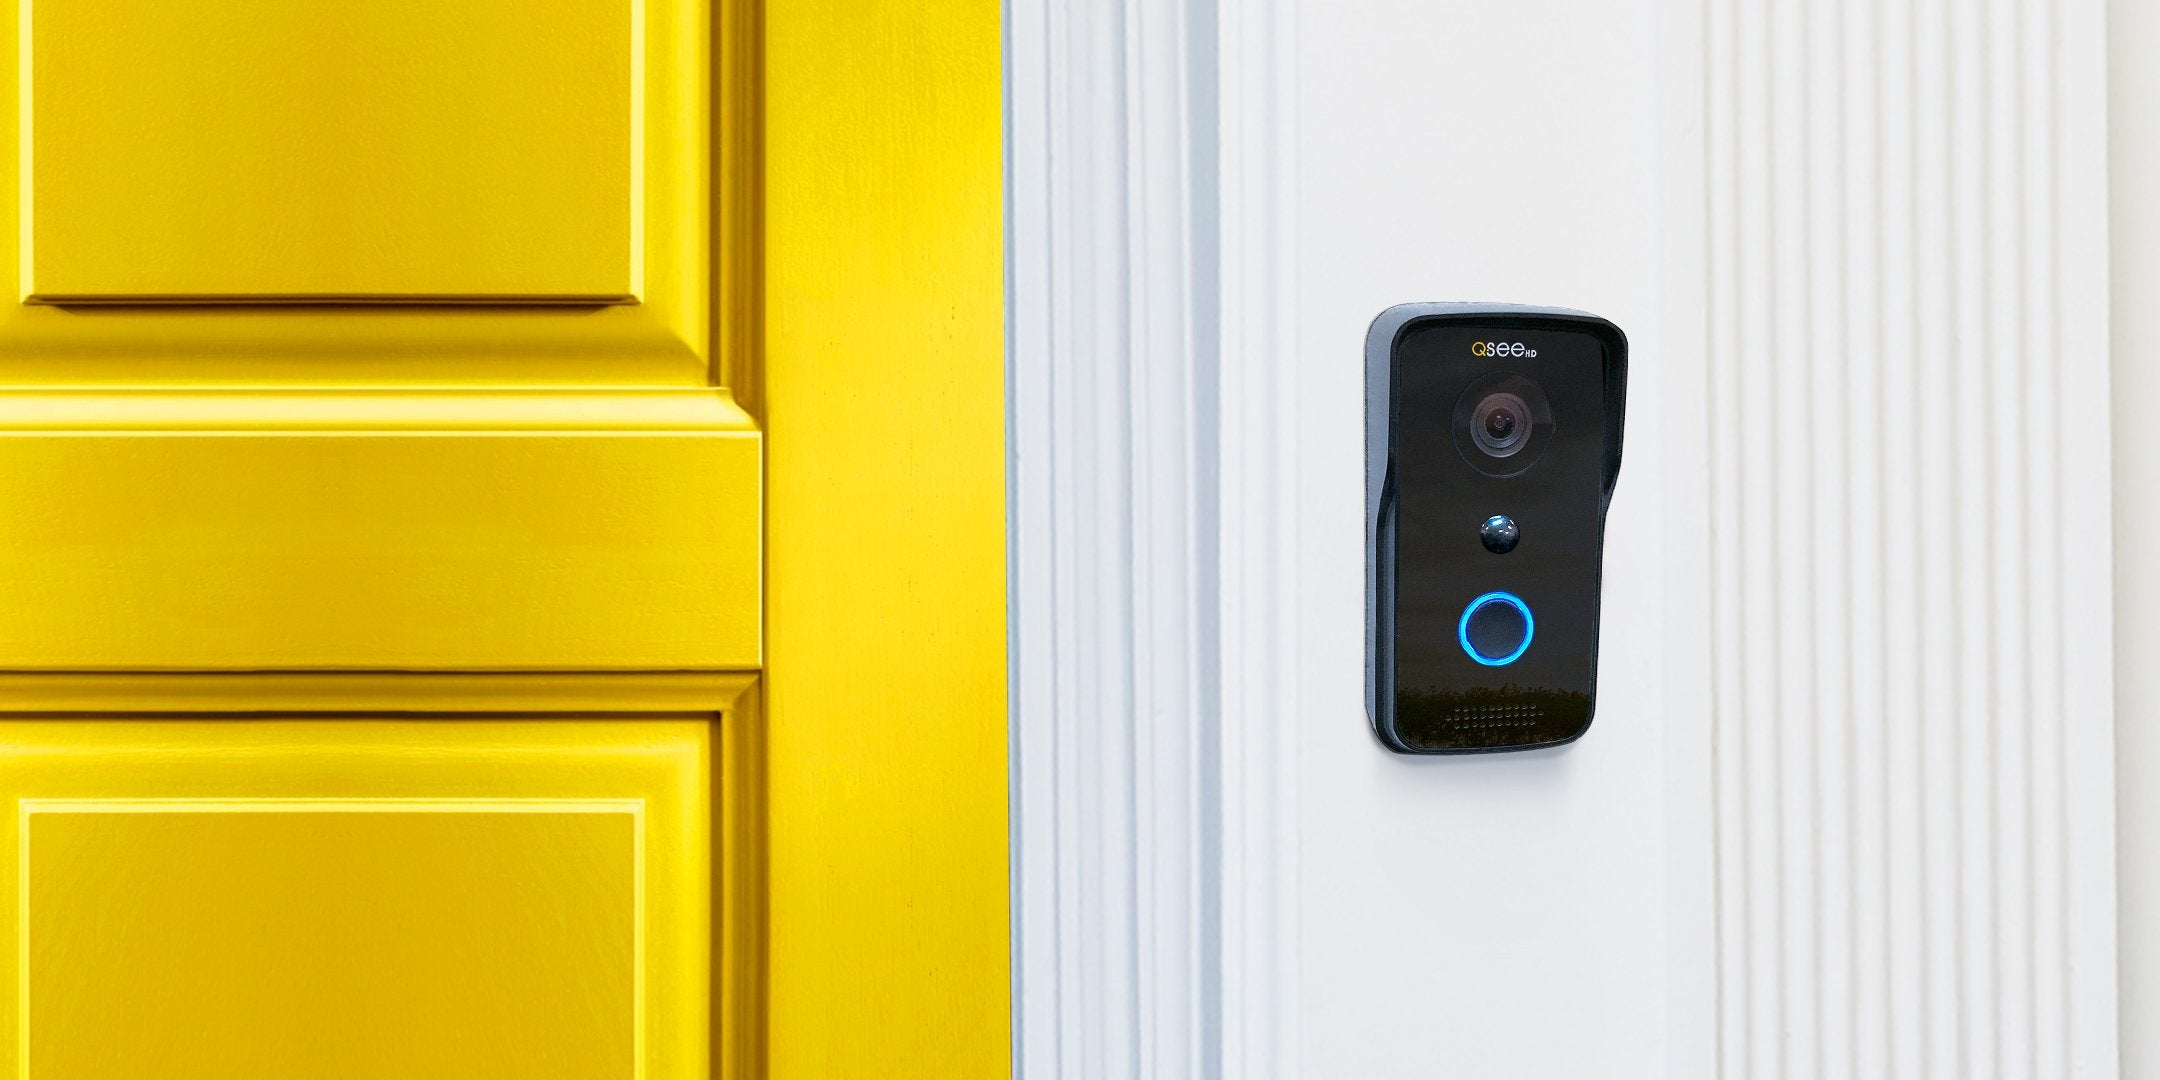 720P Wi-Fi Doorbell Camera - Black (QCW1000B) Compatible with iOS and Android! Wi-Fi  - Q-See